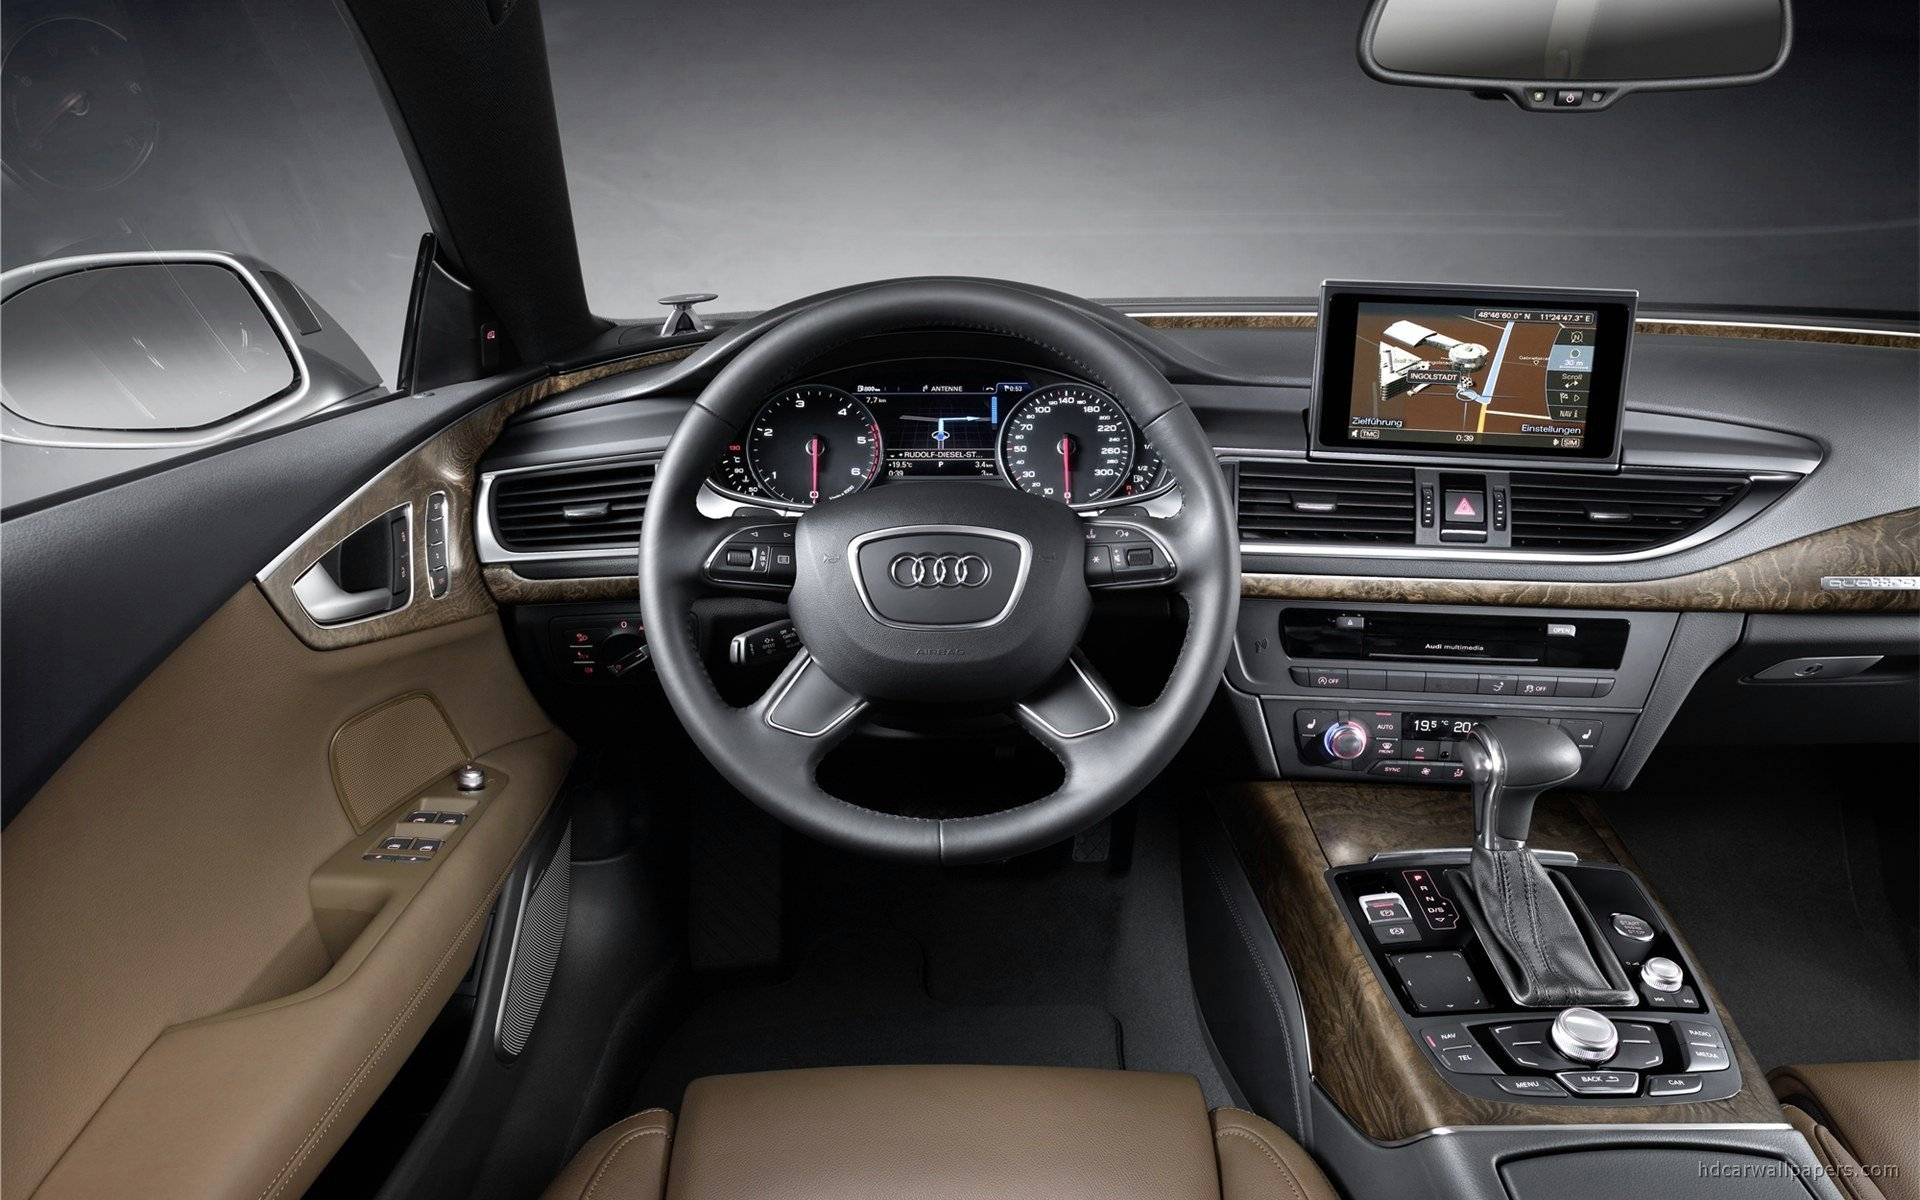 Latest 2011 Audi A7 Interior Wallpaper Hd Car Wallpapers Id 1840 Free Download